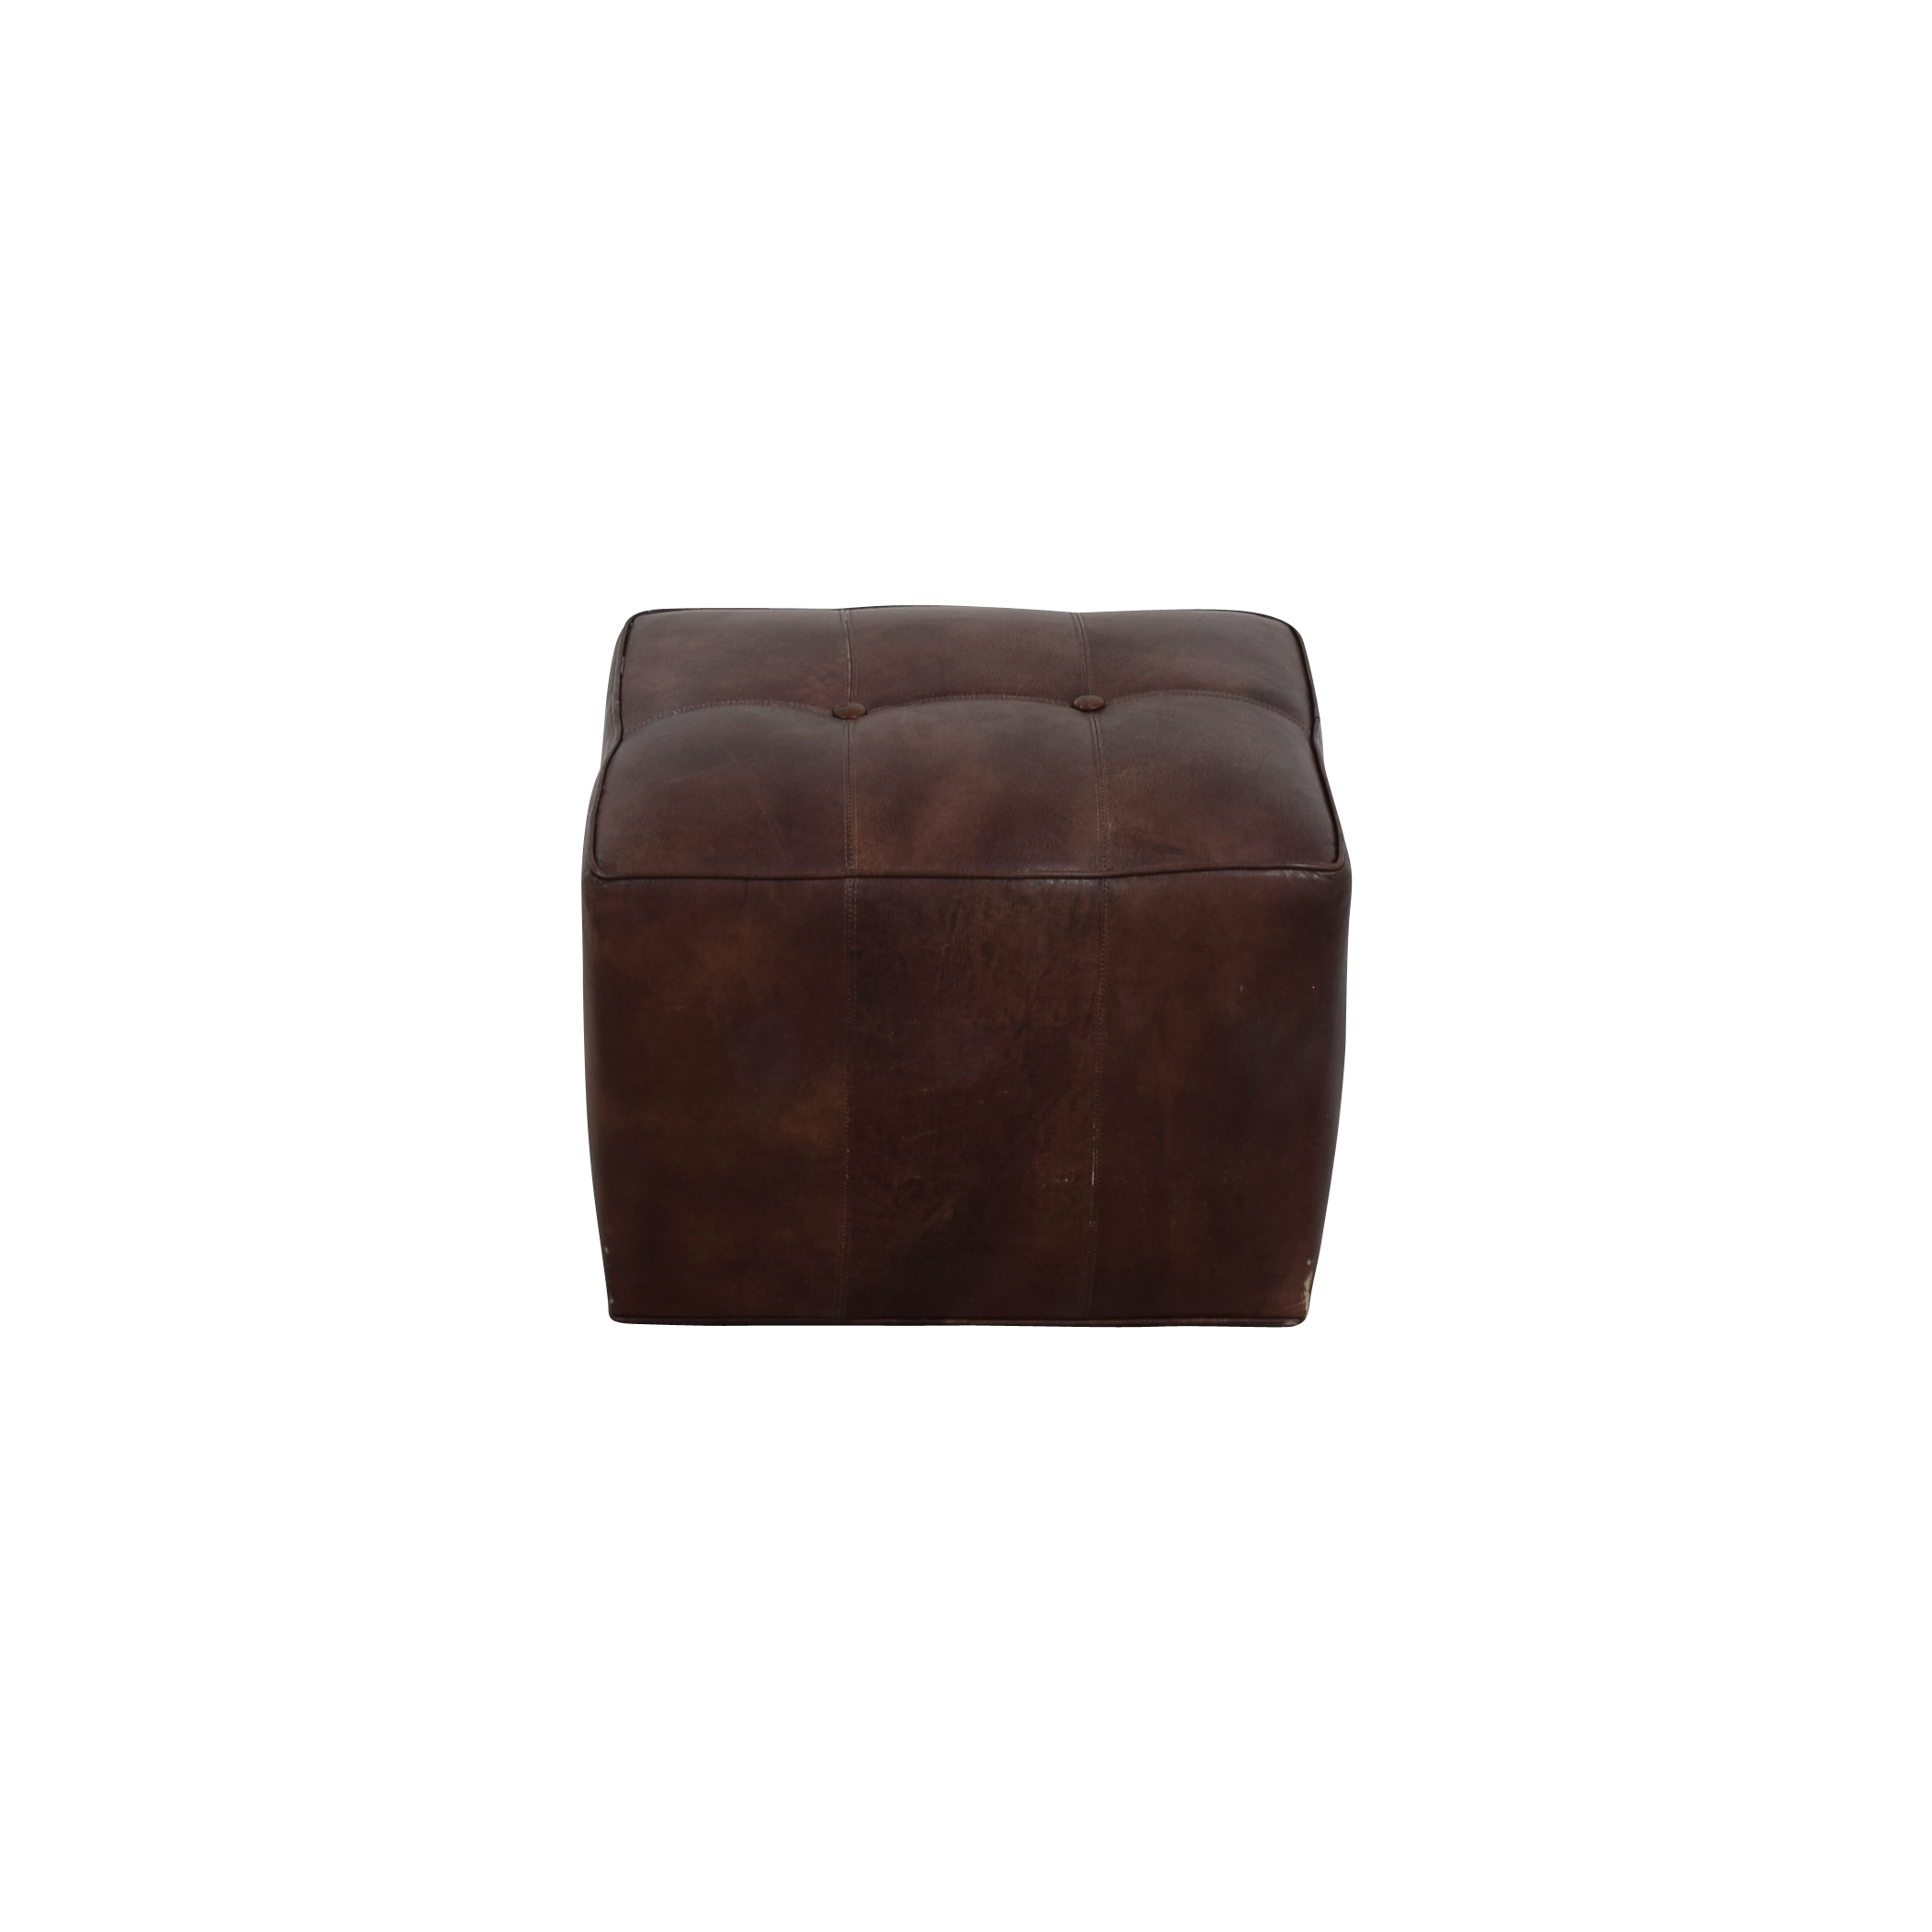 buy Room & Board Brown Leather Tufted Cube Room & Board Ottomans